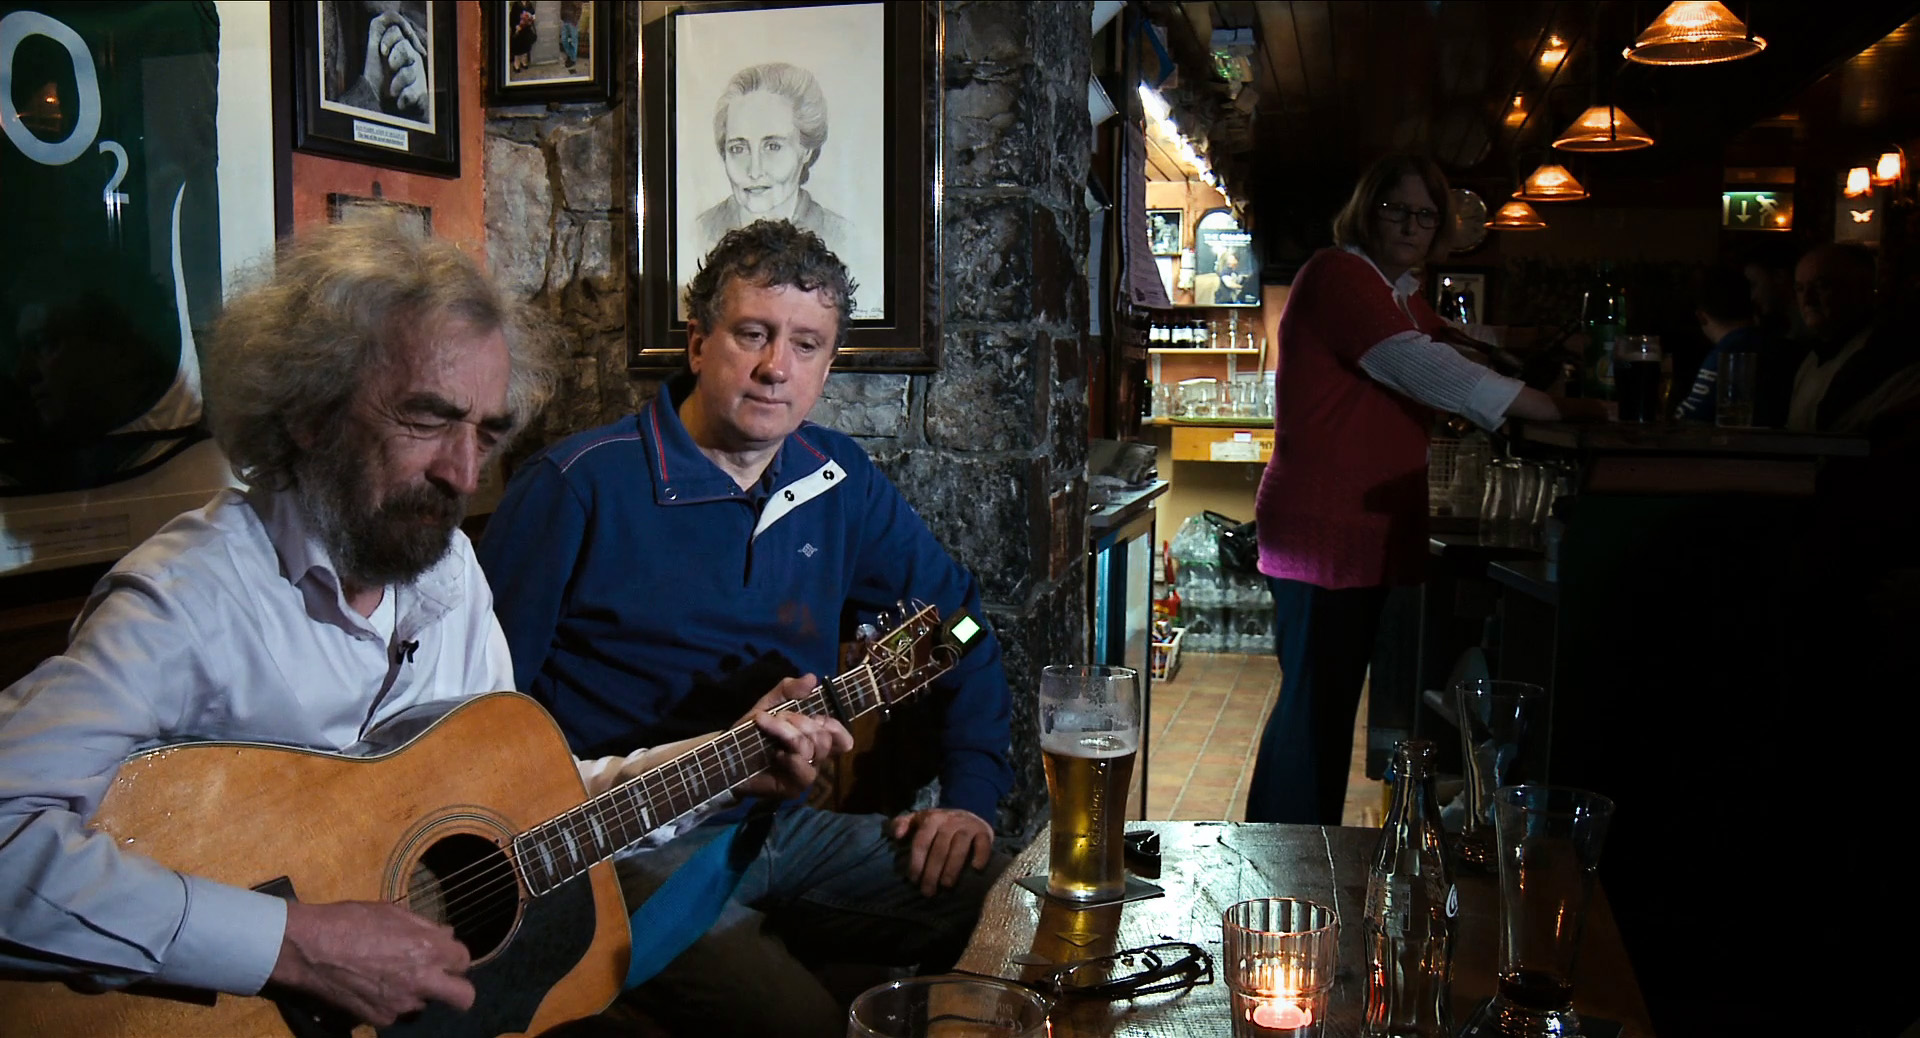 Network-Ireland-Television-The-Irish-Pub-6-NITV.jpg